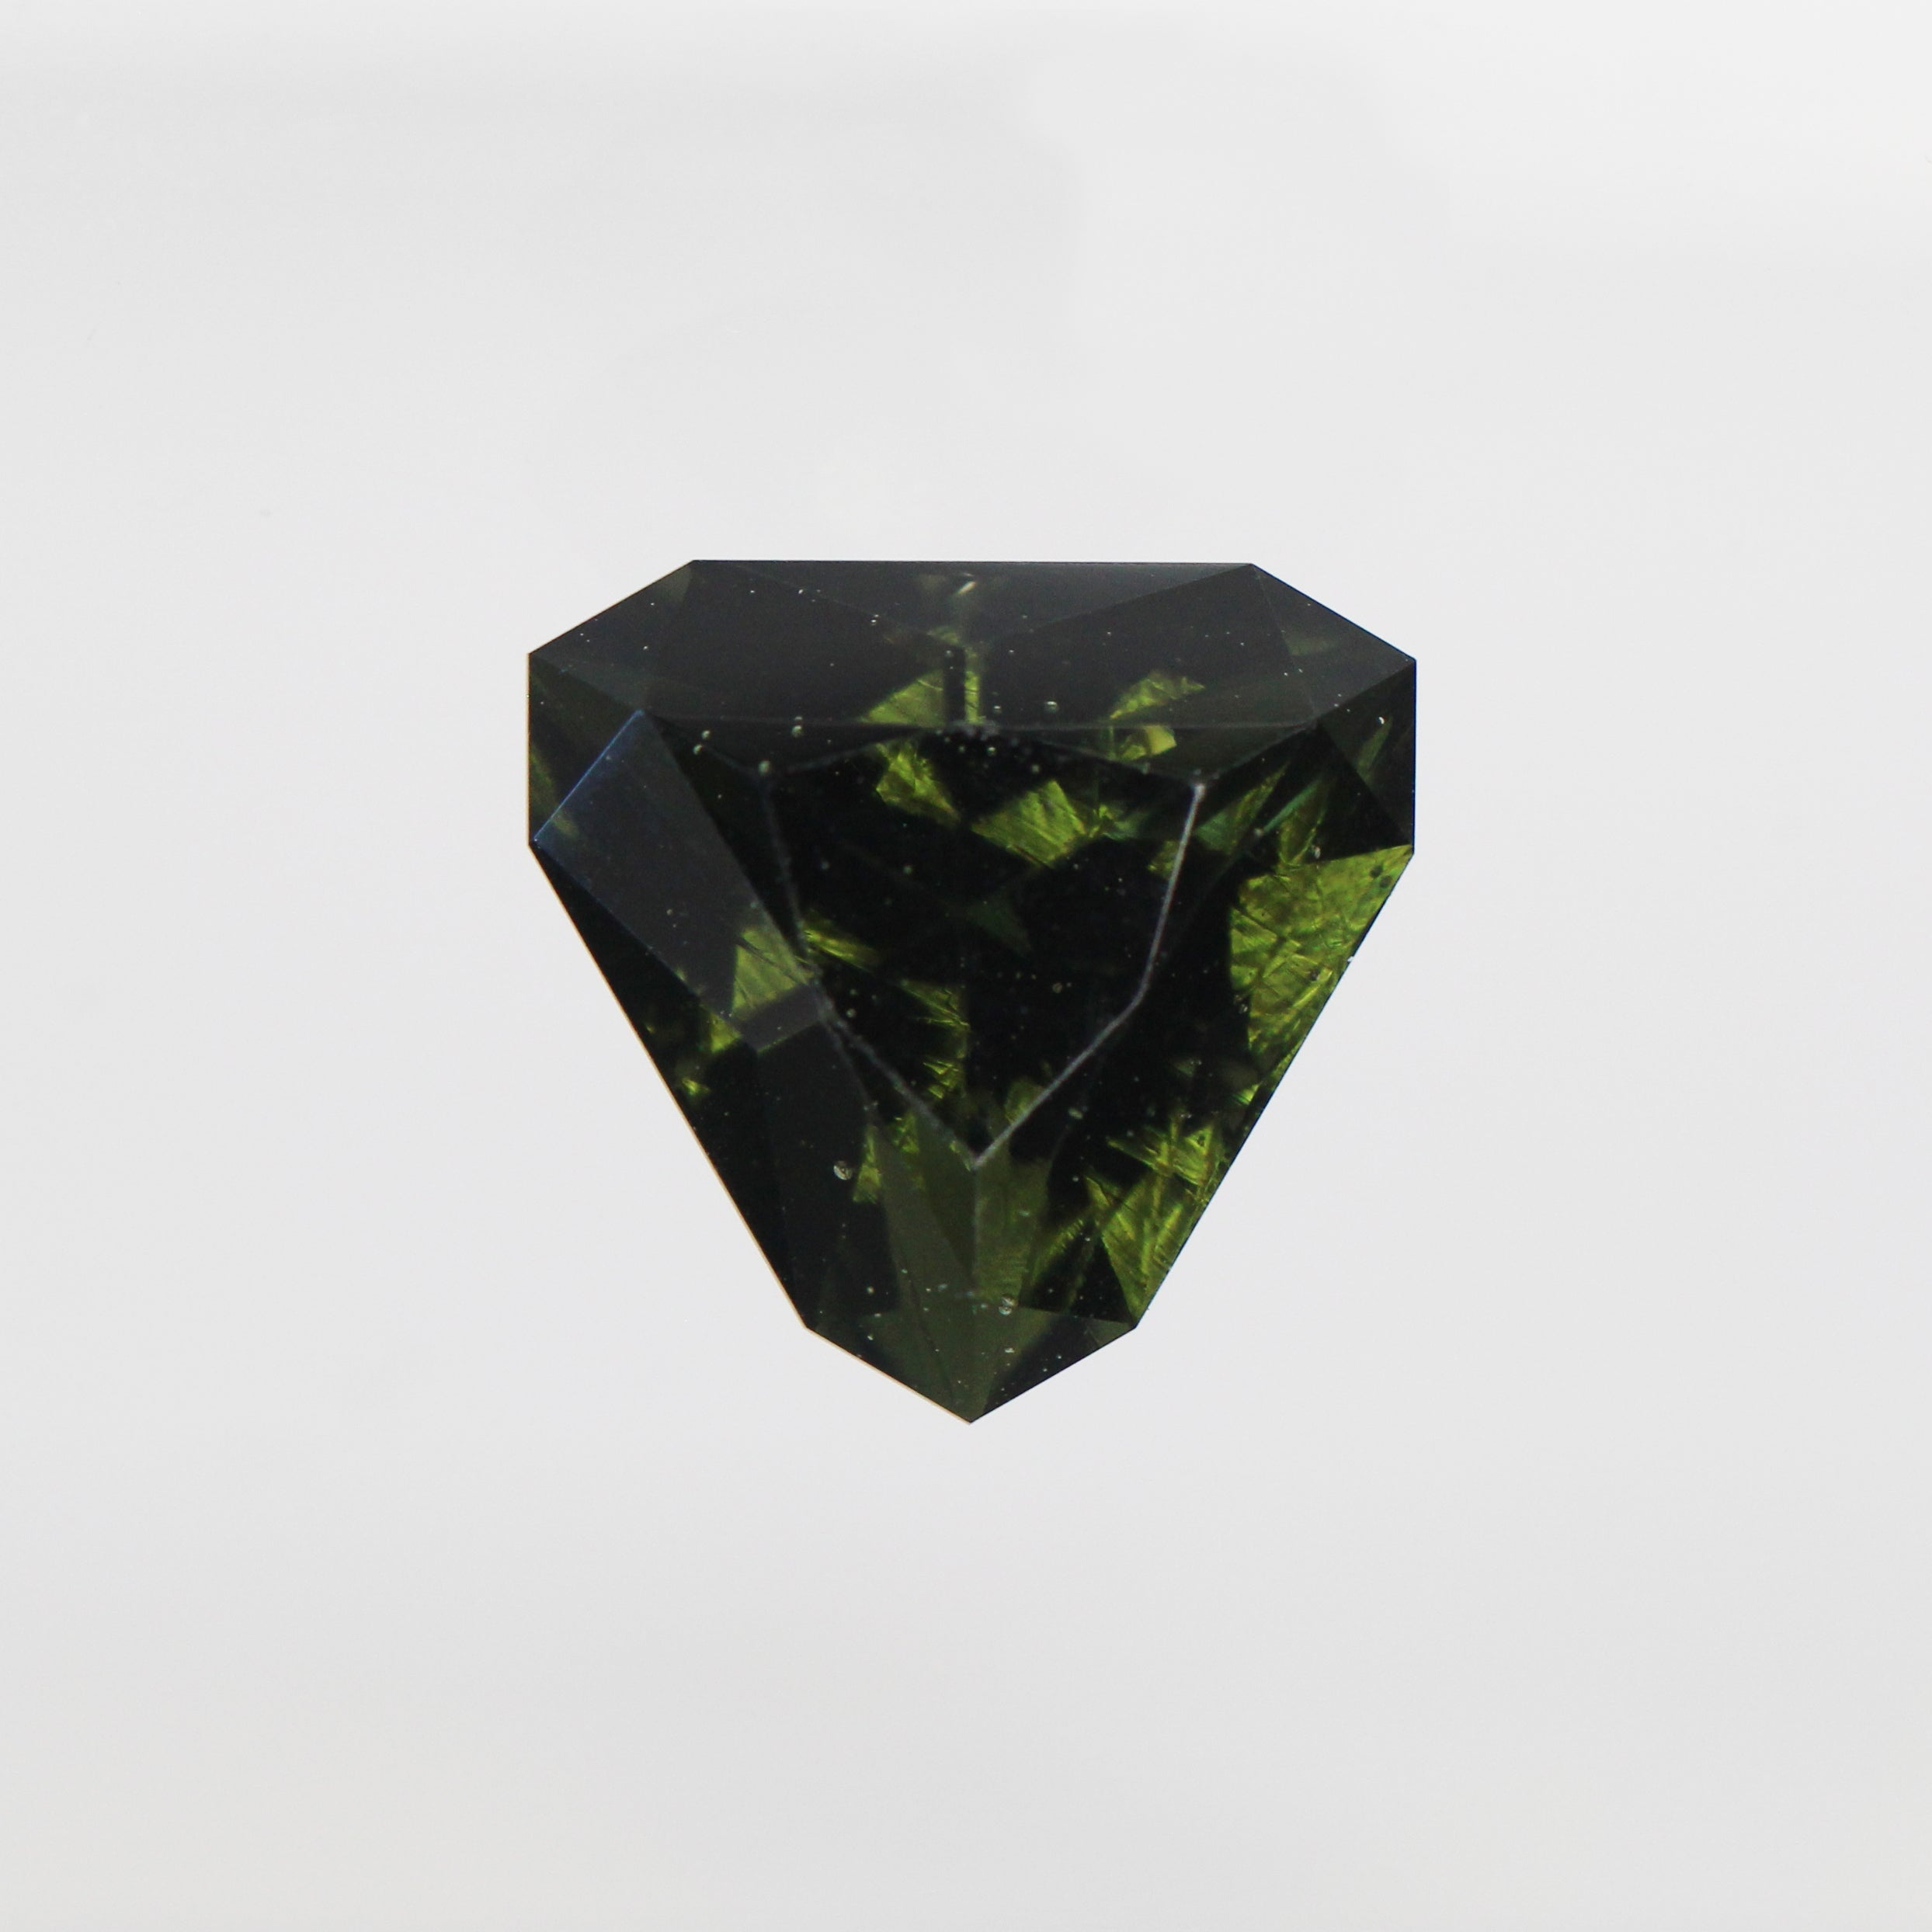 7.89 Carat Trillion Moldavite for Custom Work - Inventory Code TBMG789 - Celestial Diamonds ® by Midwinter Co.